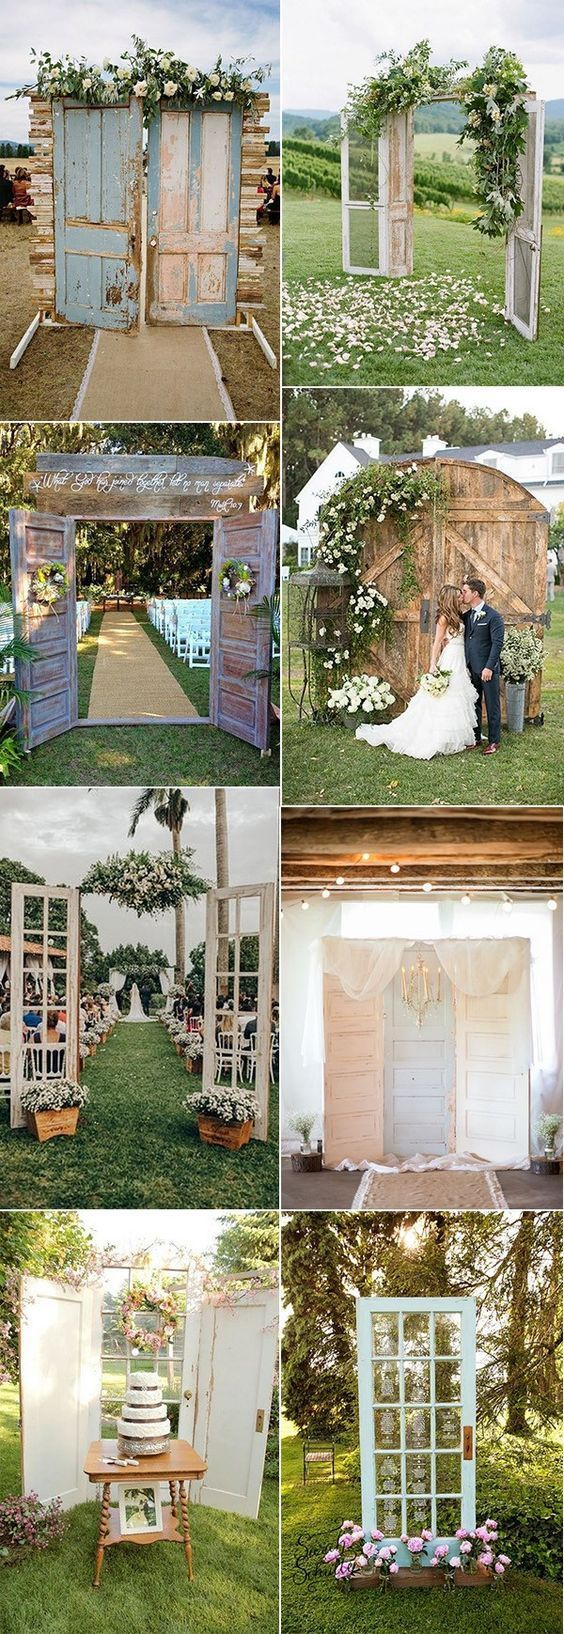 100+rustic wedding ideas diy country outdoor wedding